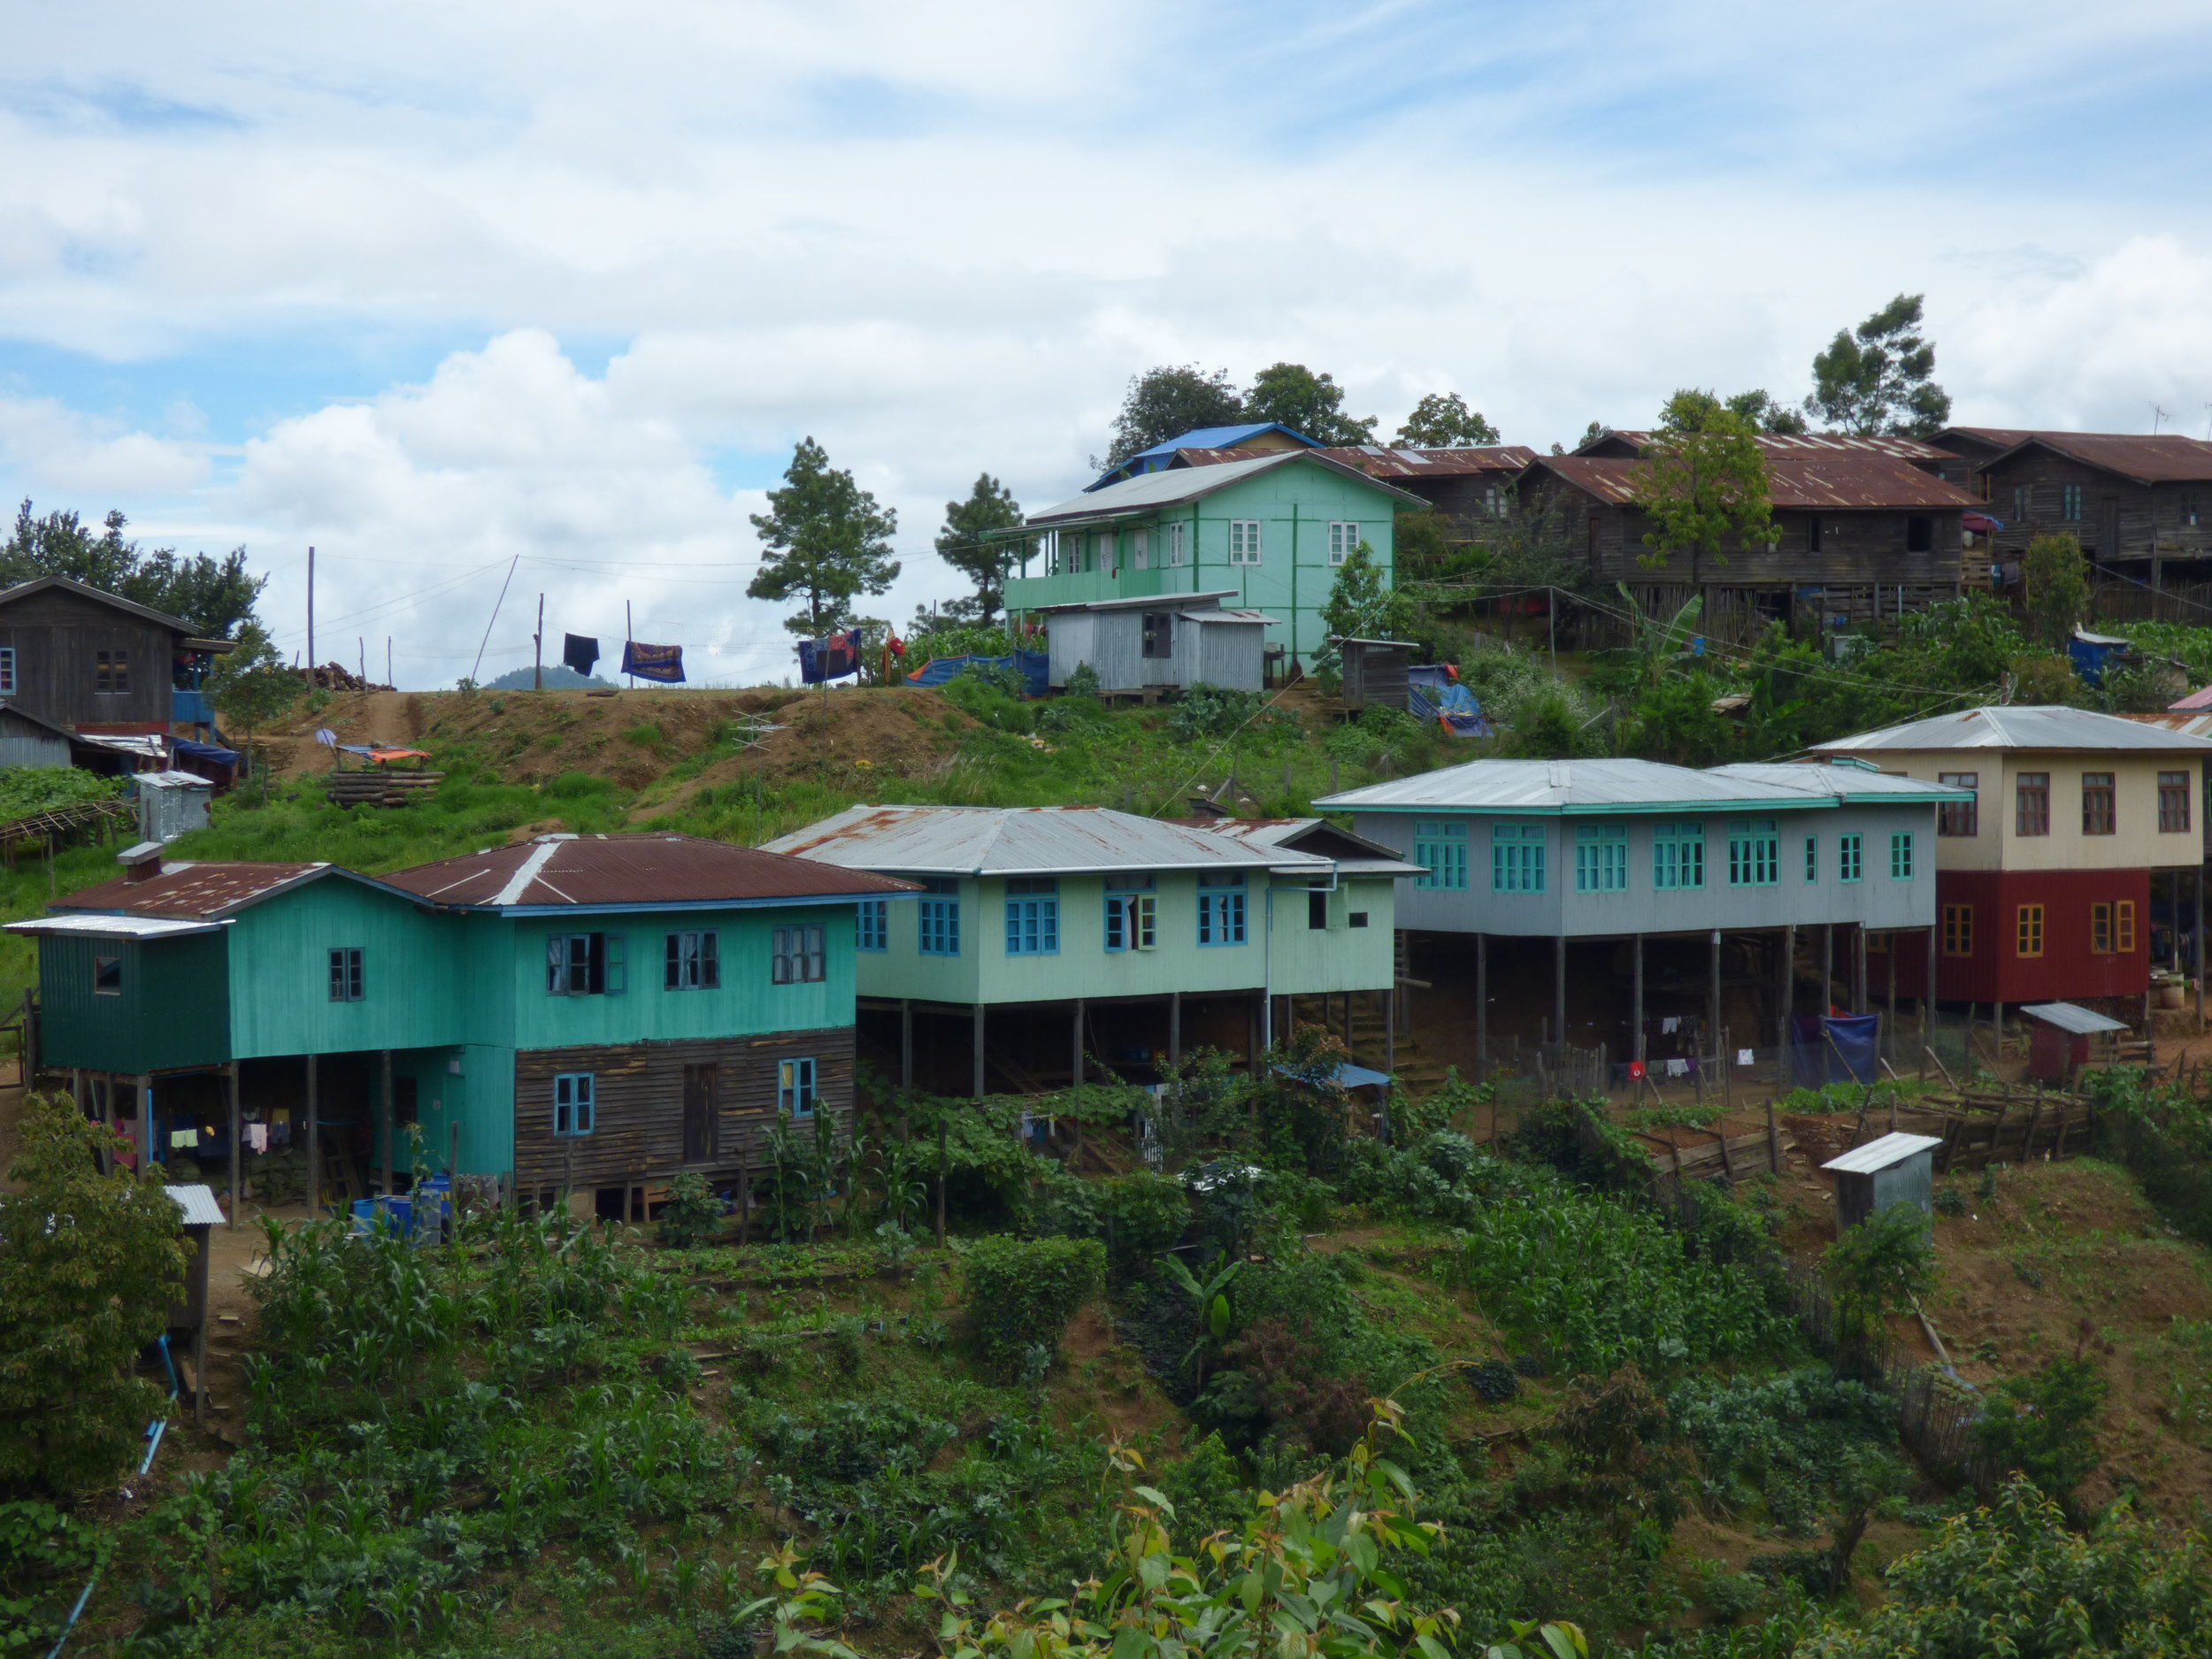 Houses perched in the watershed of the Rung Mountain, which decades ago was heavily forested and protected